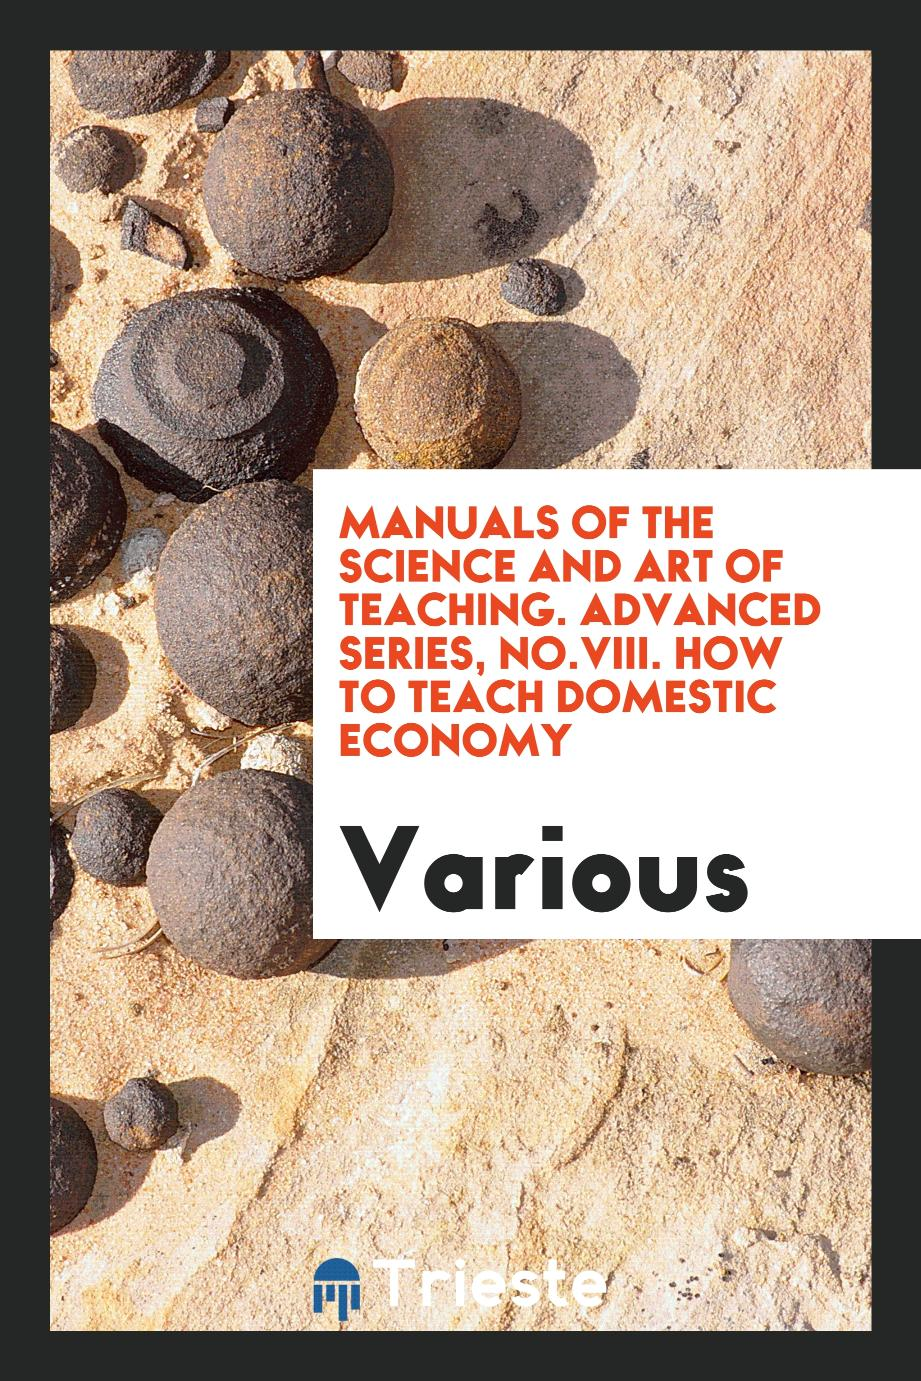 Manuals of the science and art of teaching. Advanced series, No.VIII. How to teach domestic economy